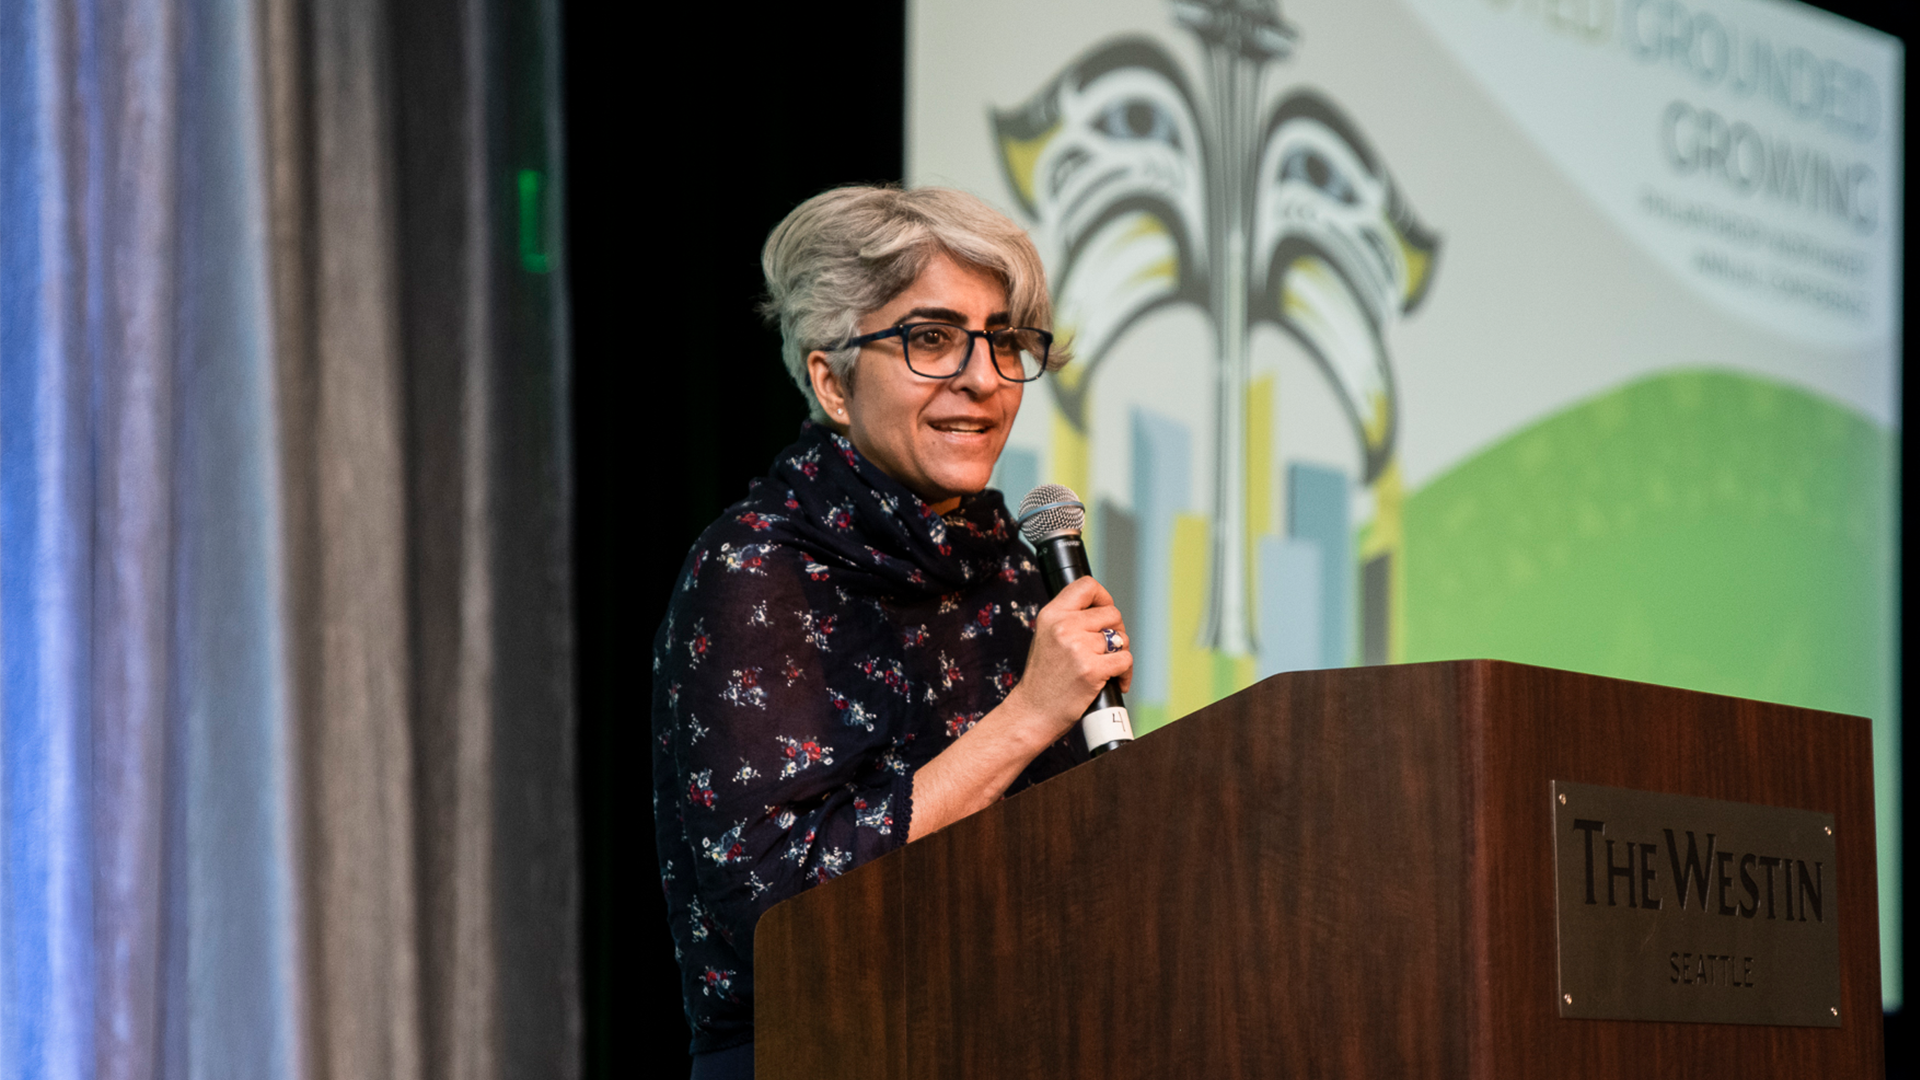 Kiran Ahuja on stage at the Philanthropy Northwest Annual Conference in 2019